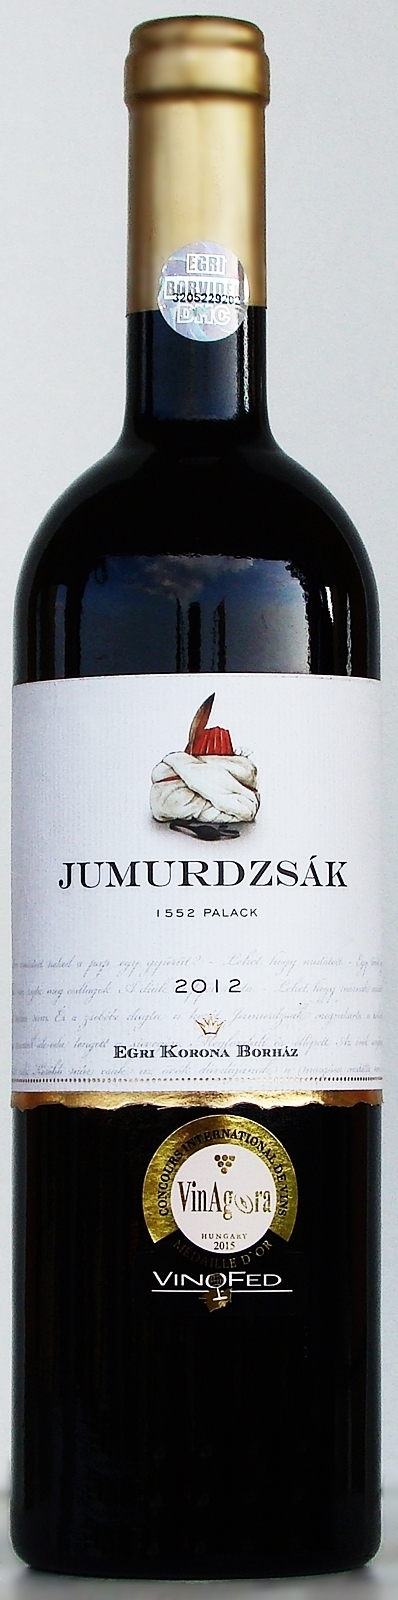 Syrah Jumurdzsak Grand Selection